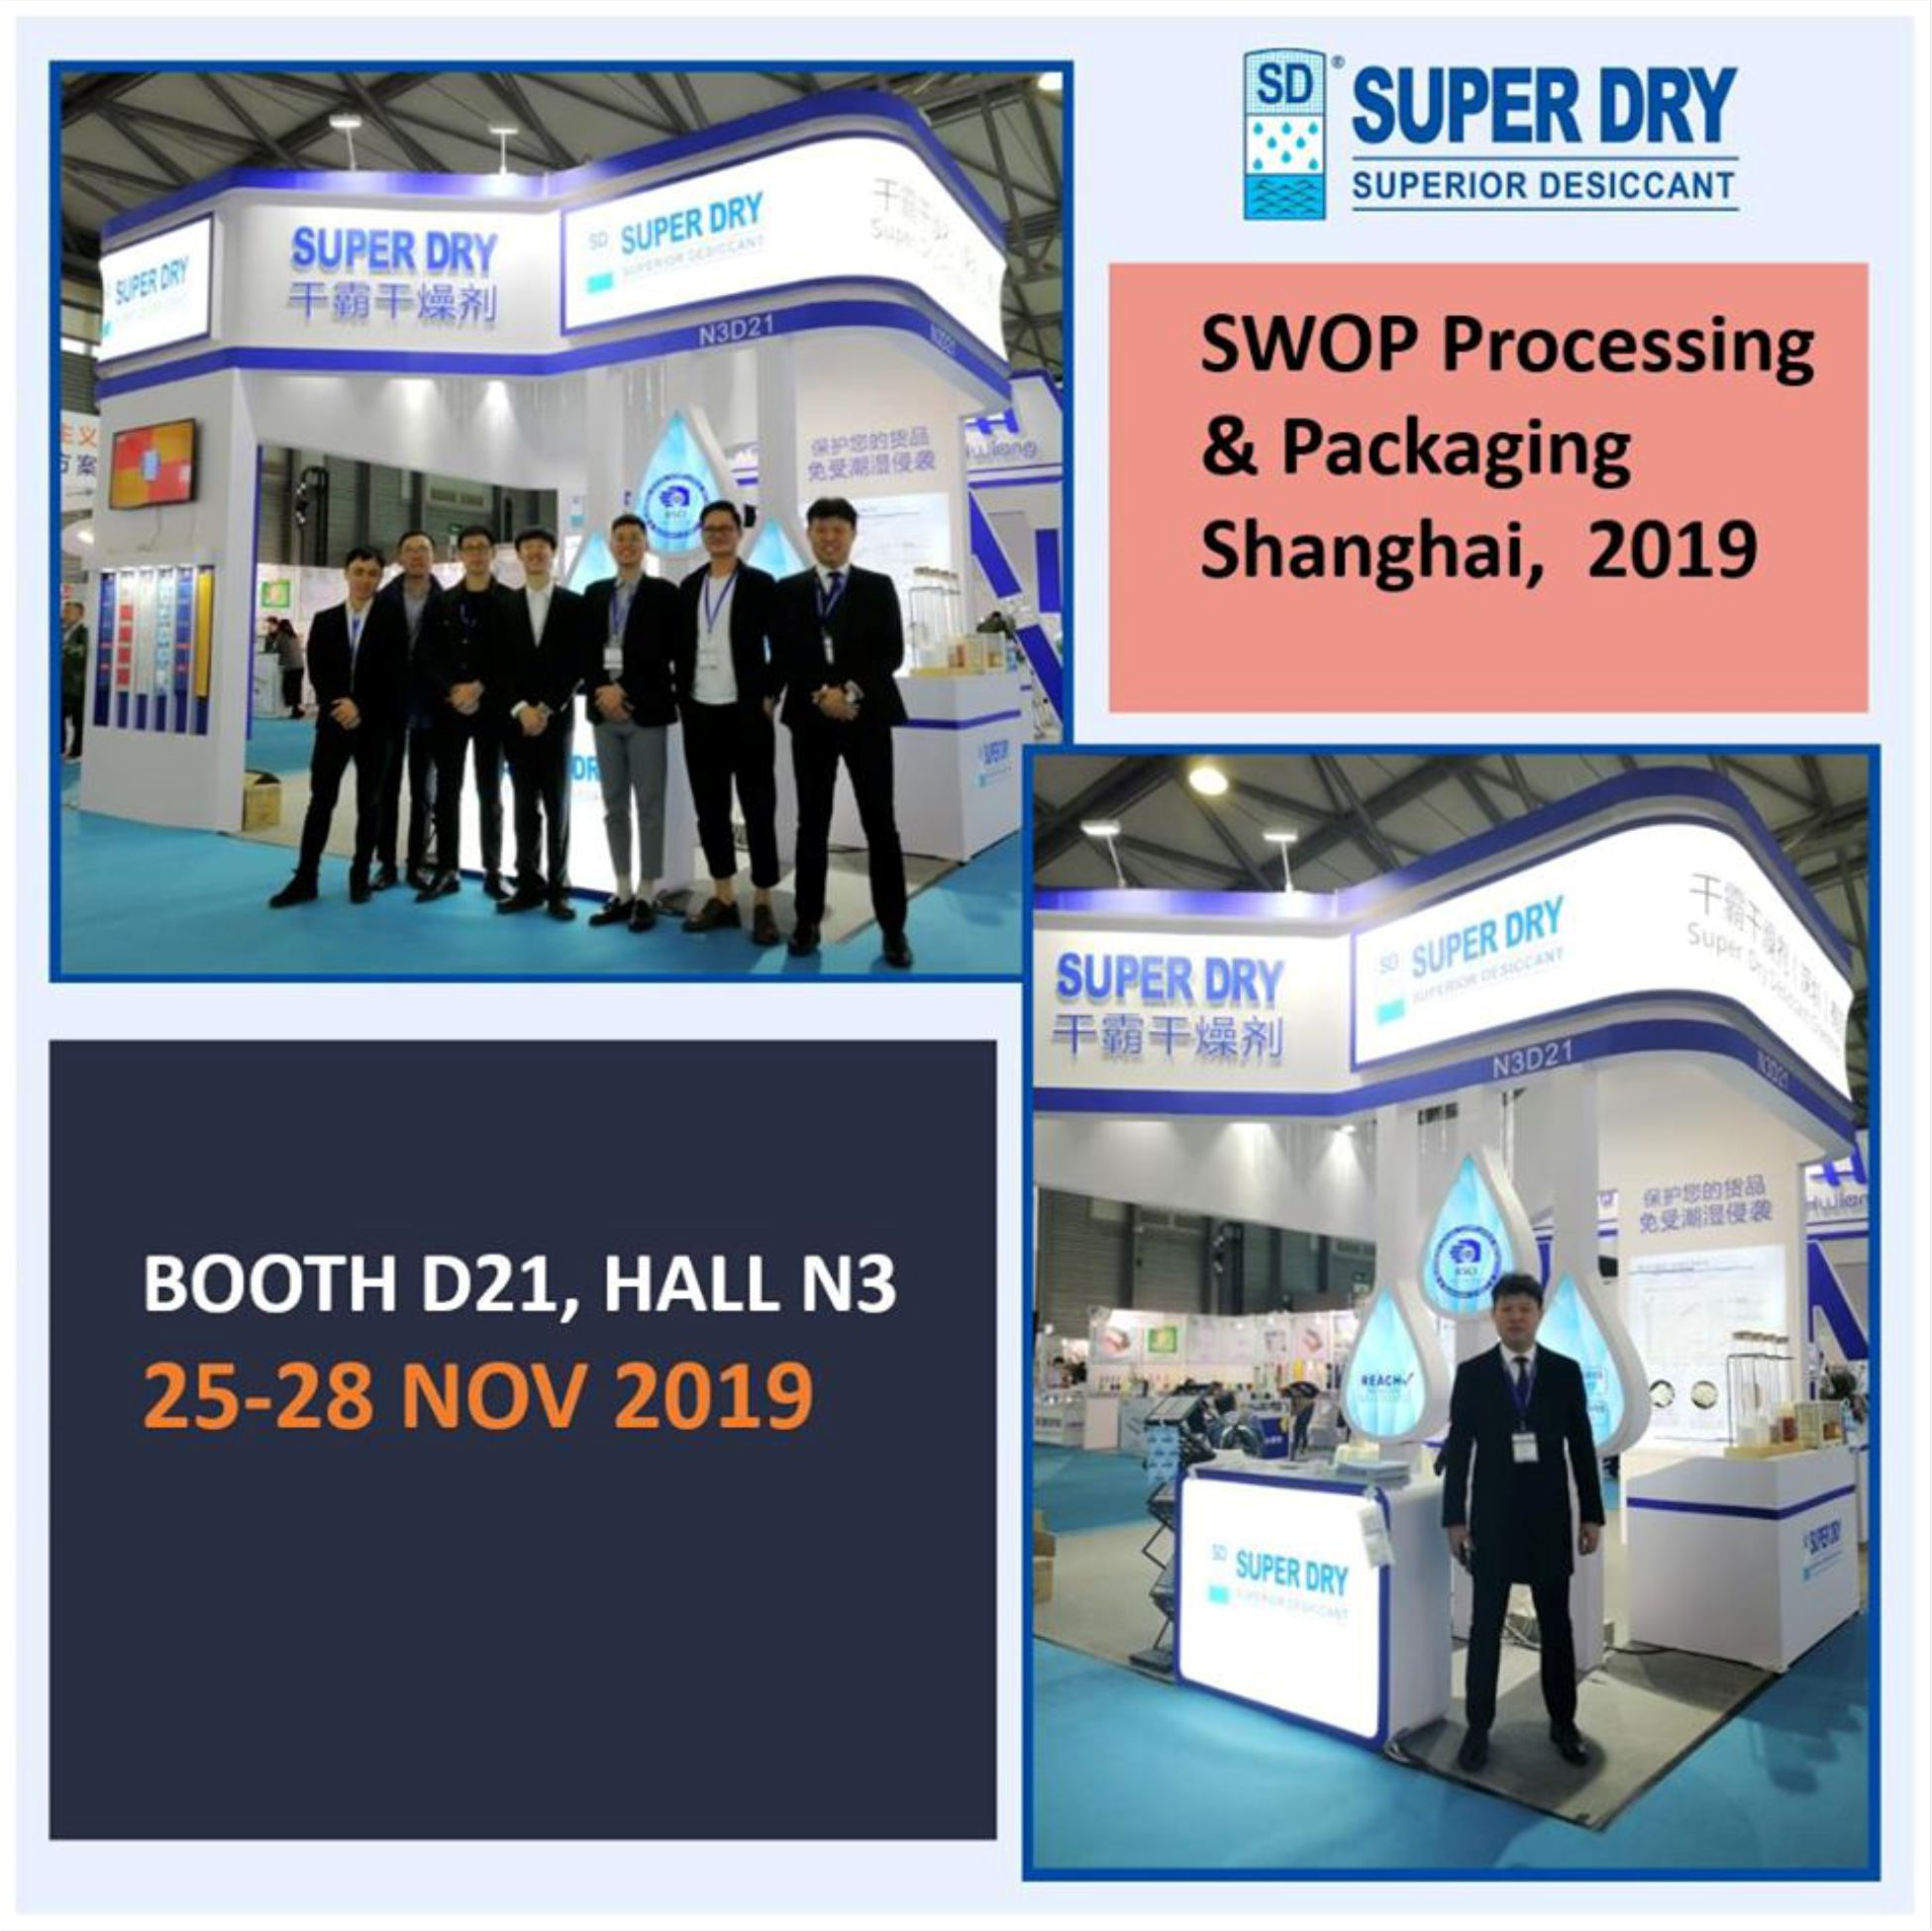 #SWOP Processing & Packaging in Shanghai